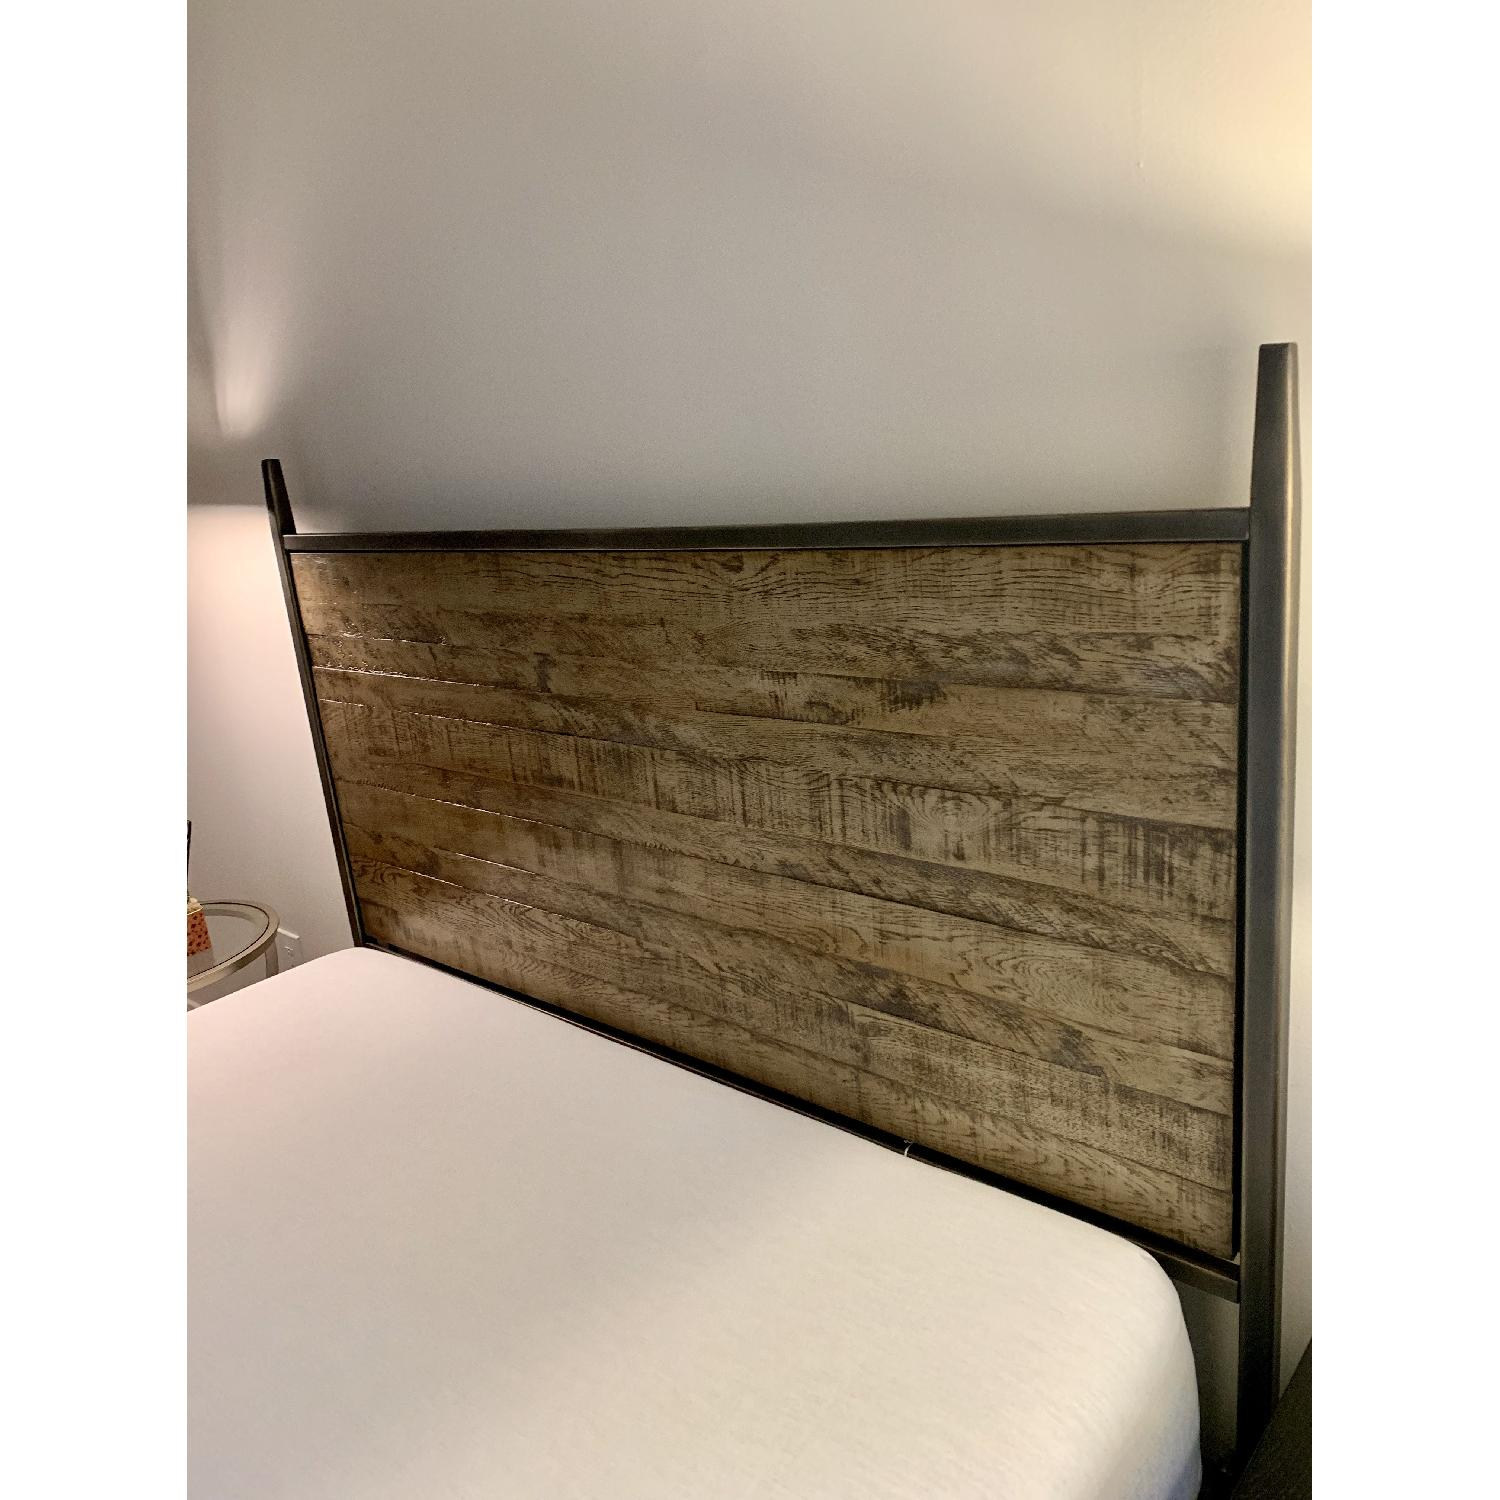 Ethan Allen Lincoln Queen Size Bed Frame w/ Headboard - image-5